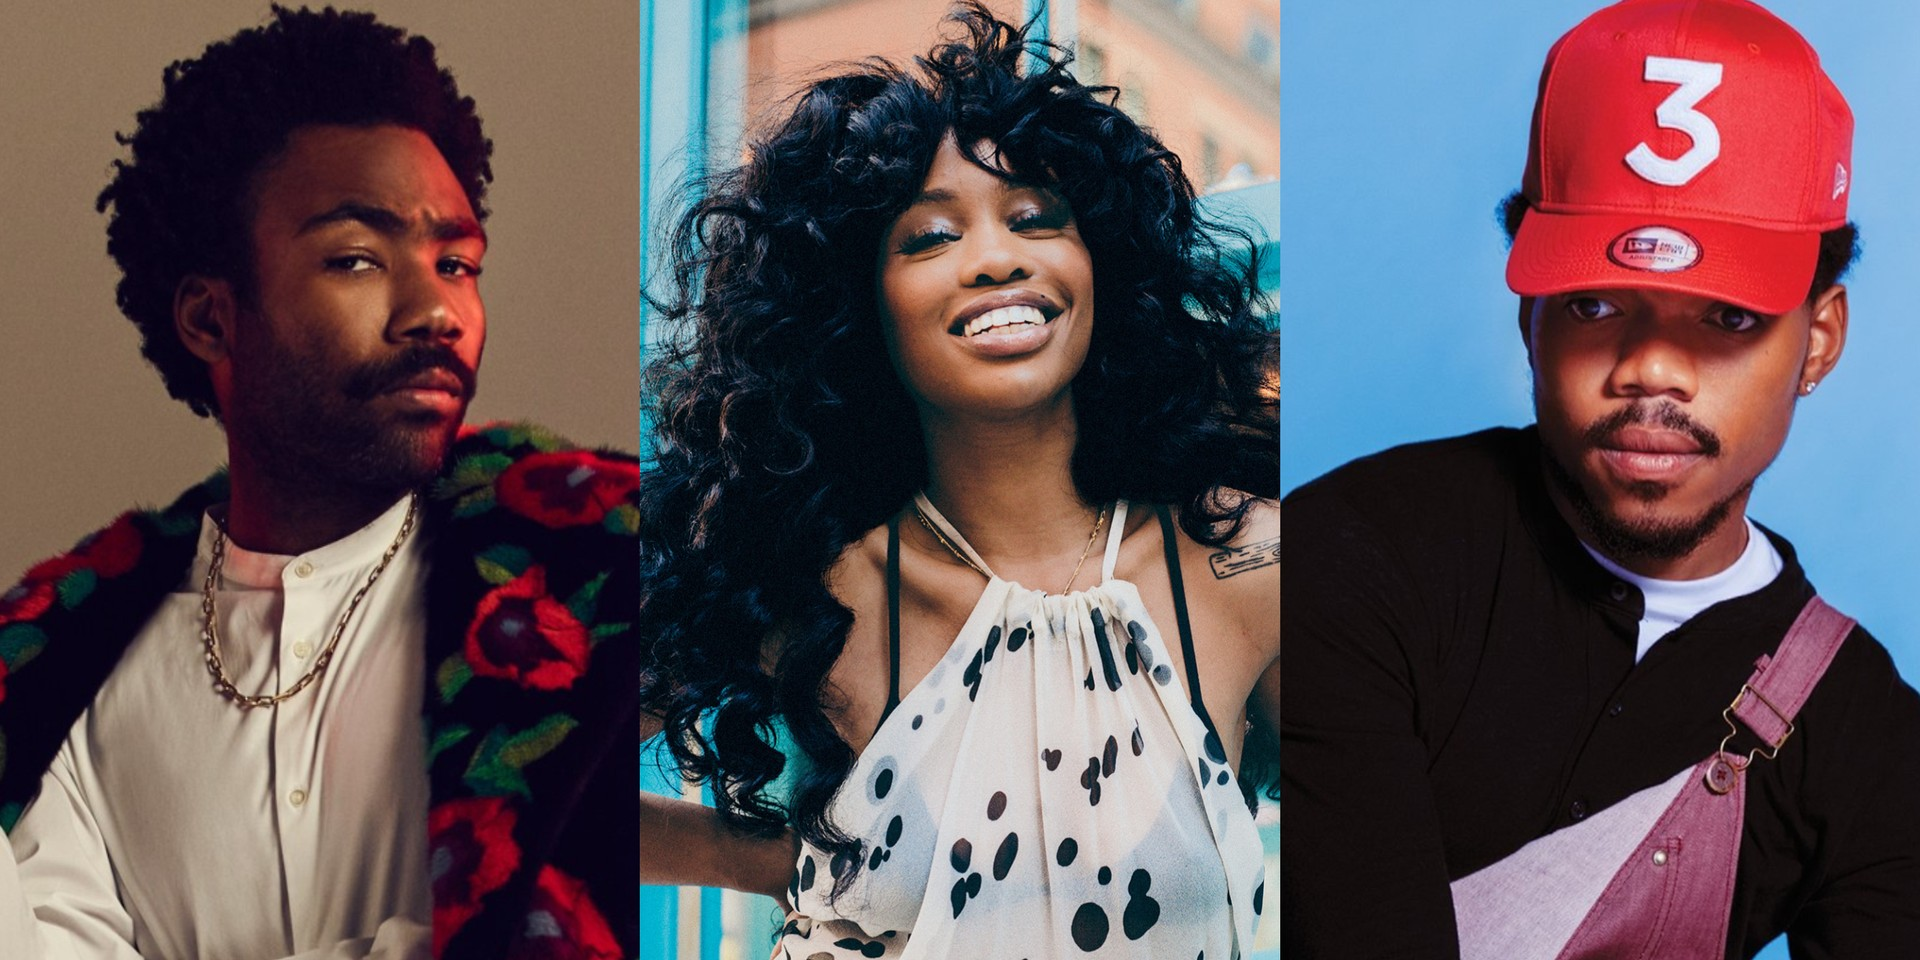 Splendour In The Grass announces line-up – Childish Gambino, SZA, Chance The Rapper, Tame Impala and more to perform